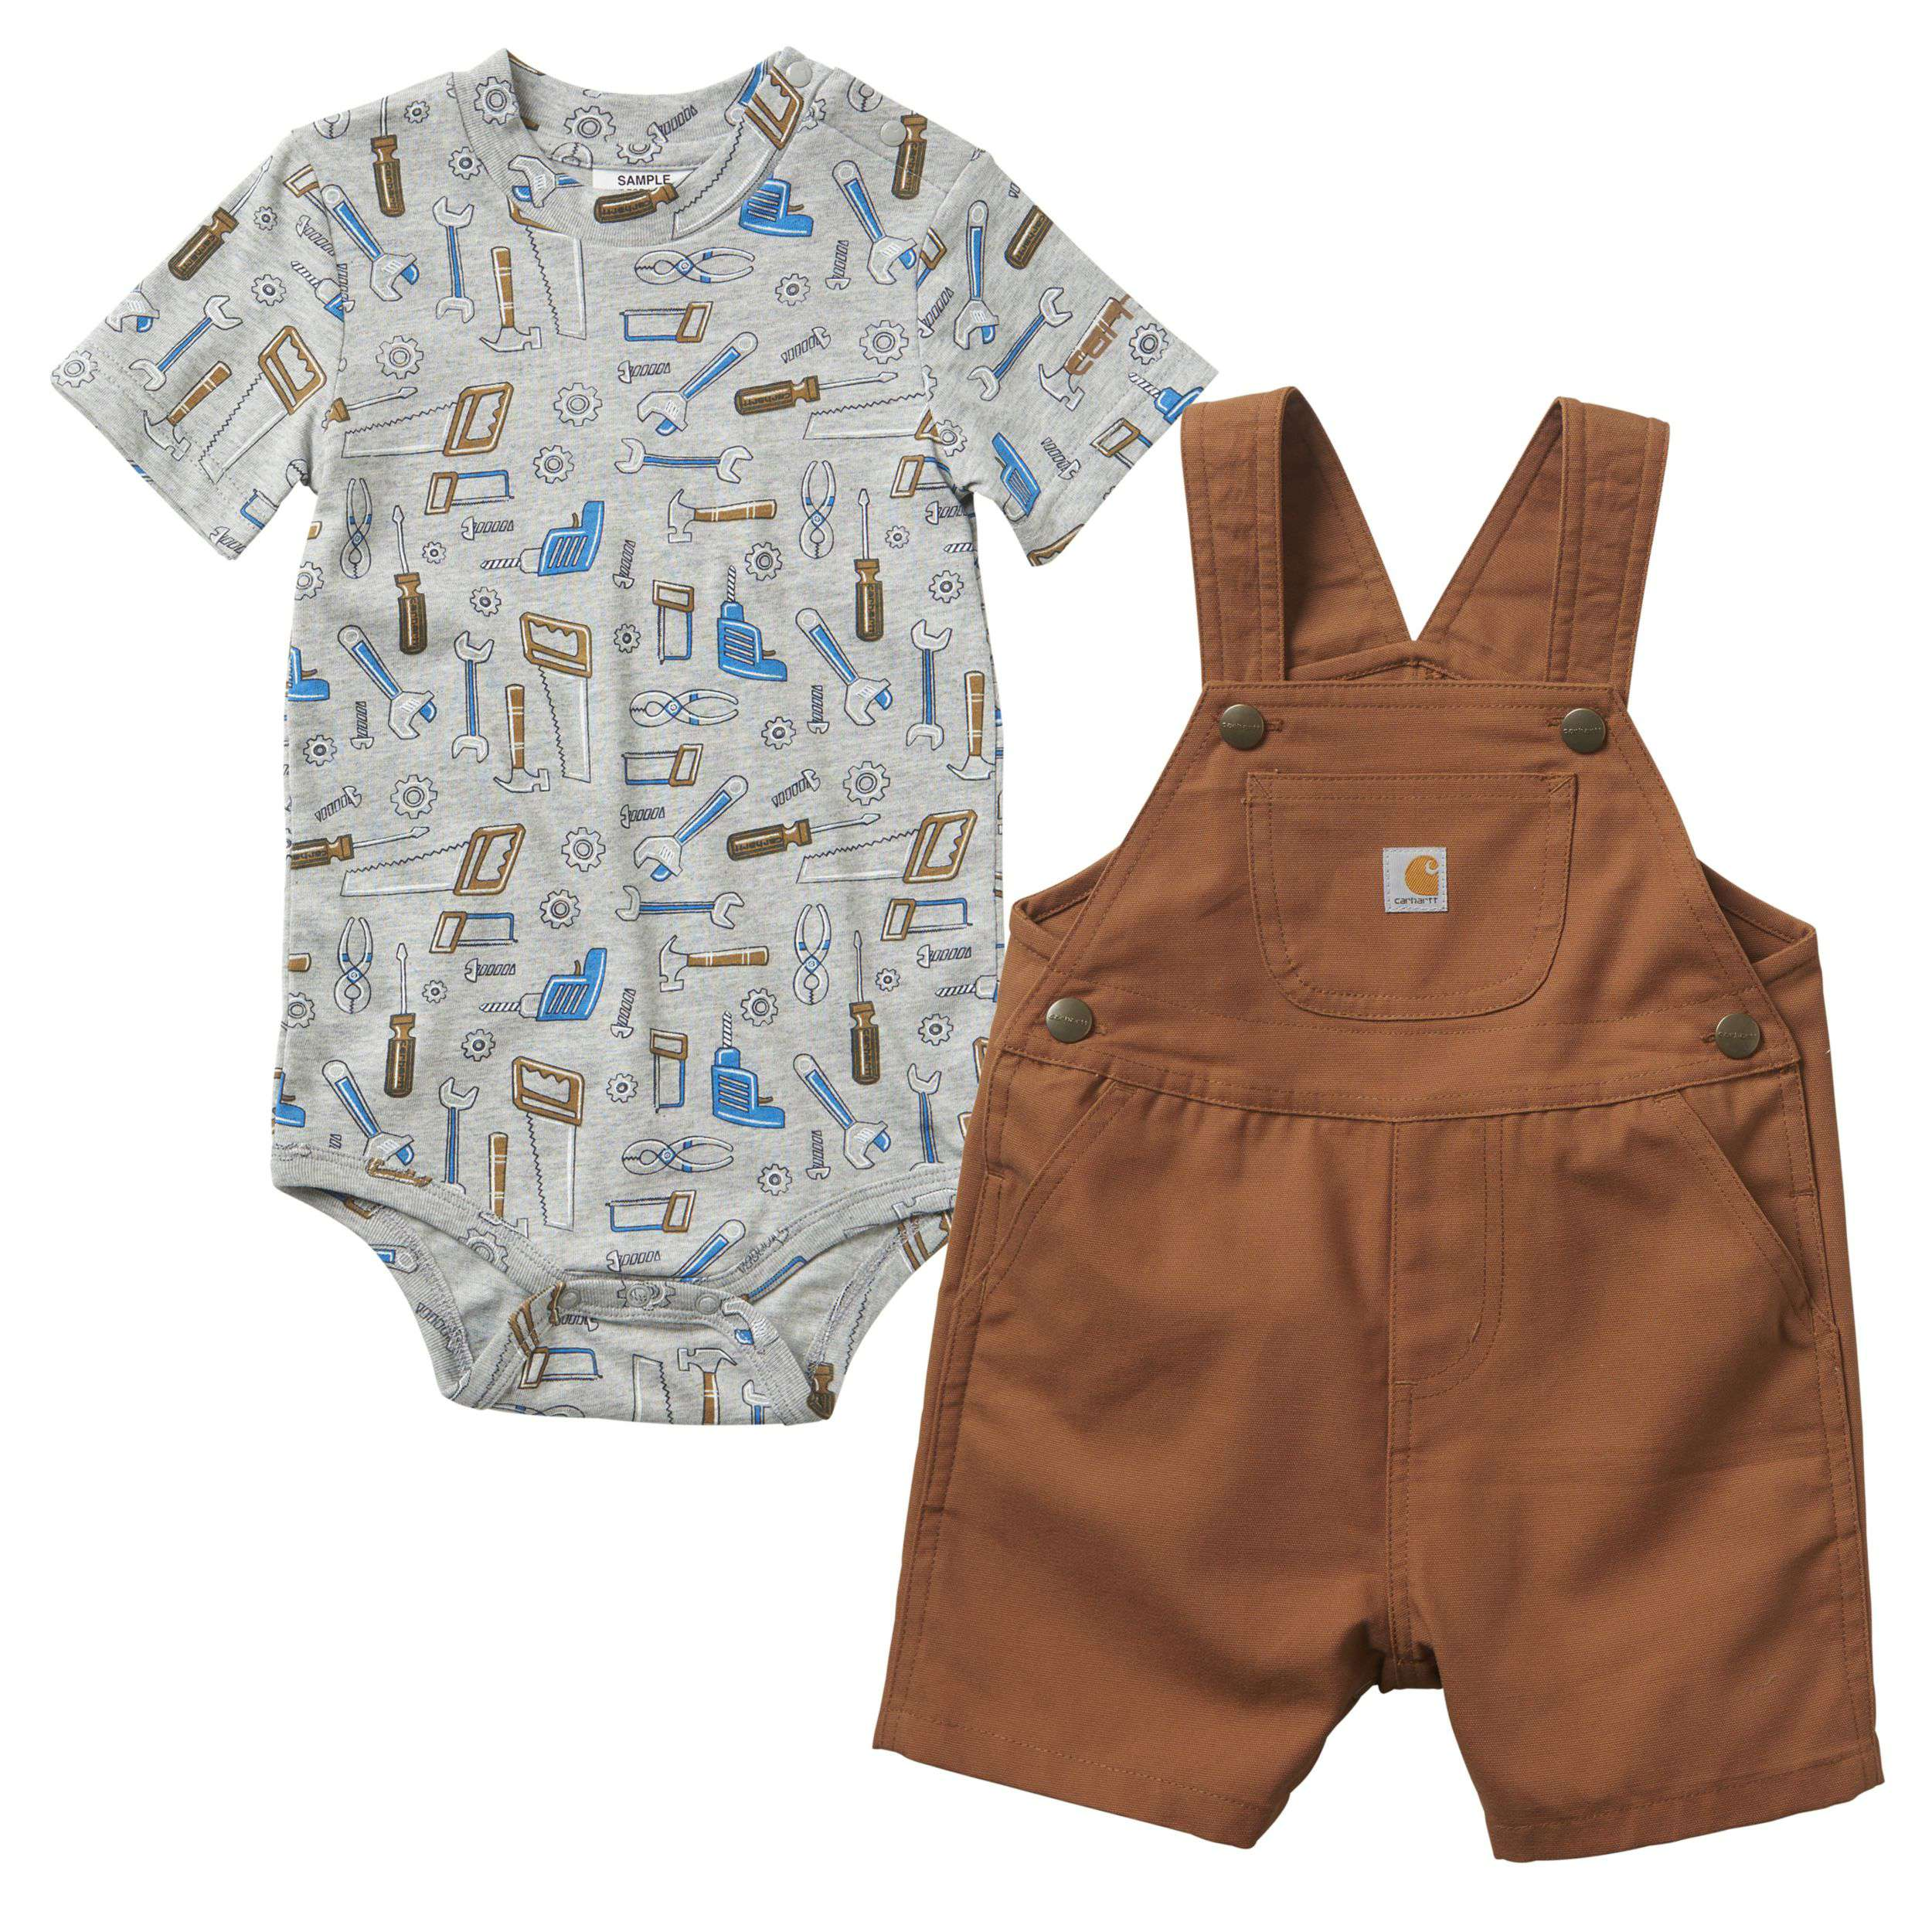 Carhartt Canvas Shortall Set